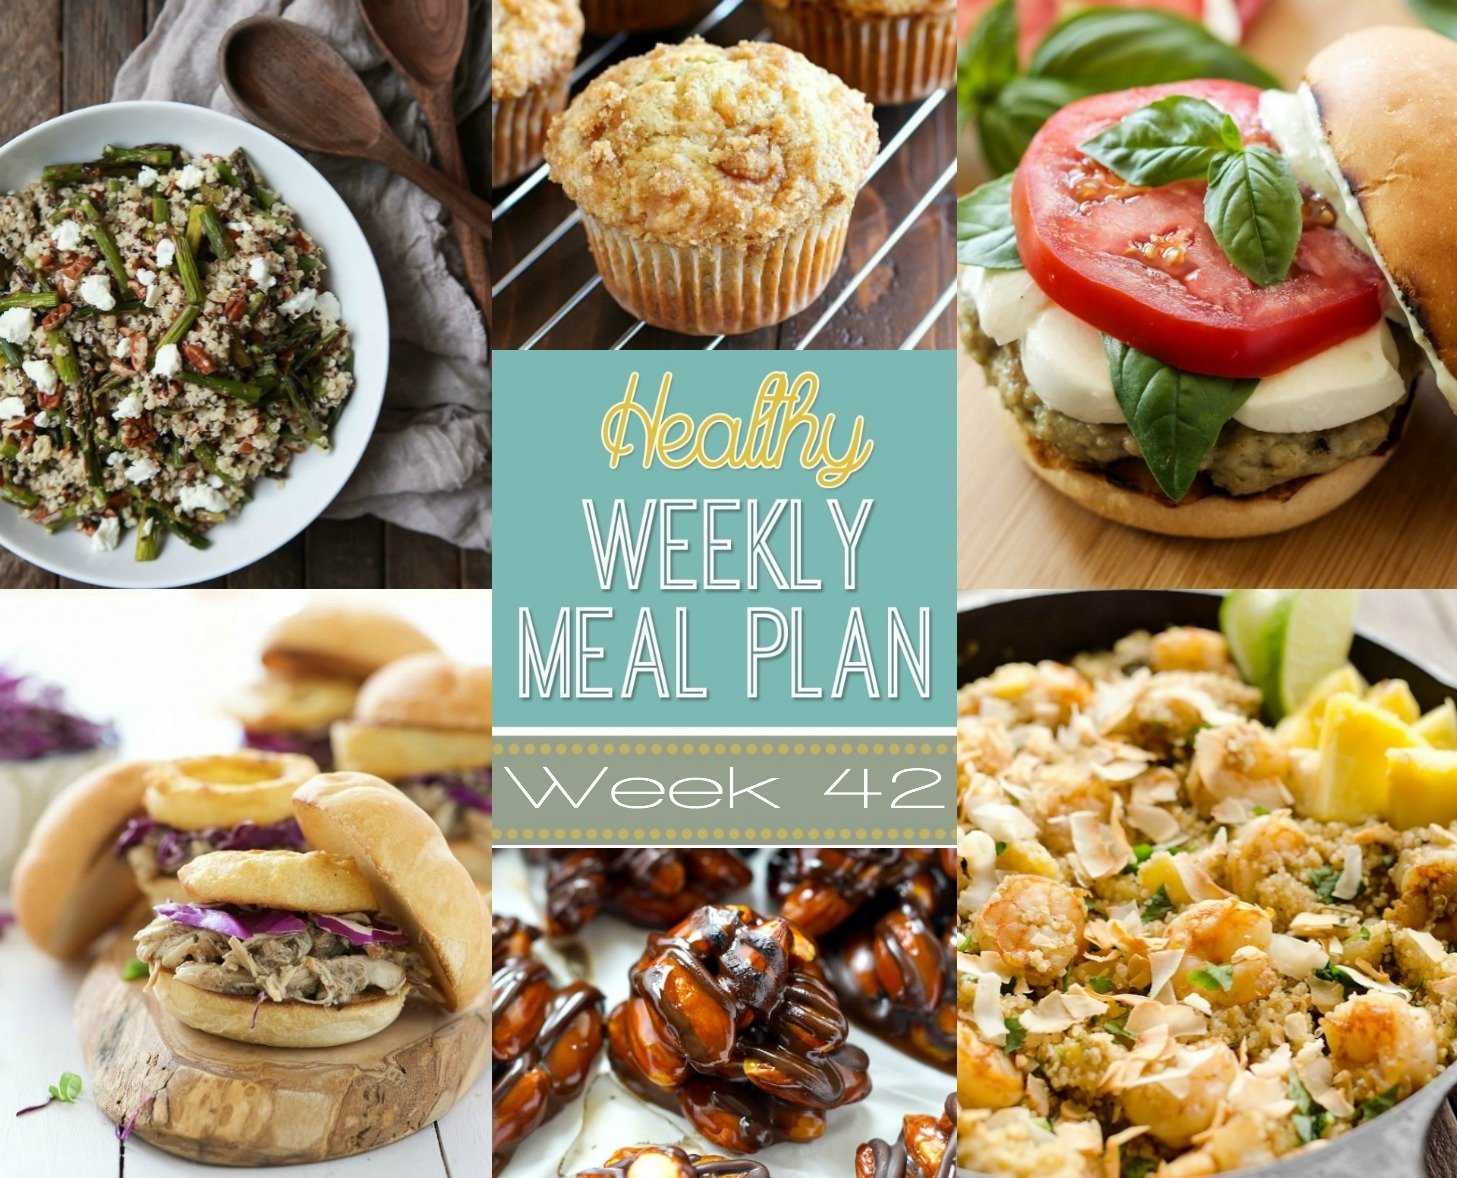 10 Stylish Dinner Ideas For The Week healthy meal plan week 42 easy healthy recipes using real ingredients 2020